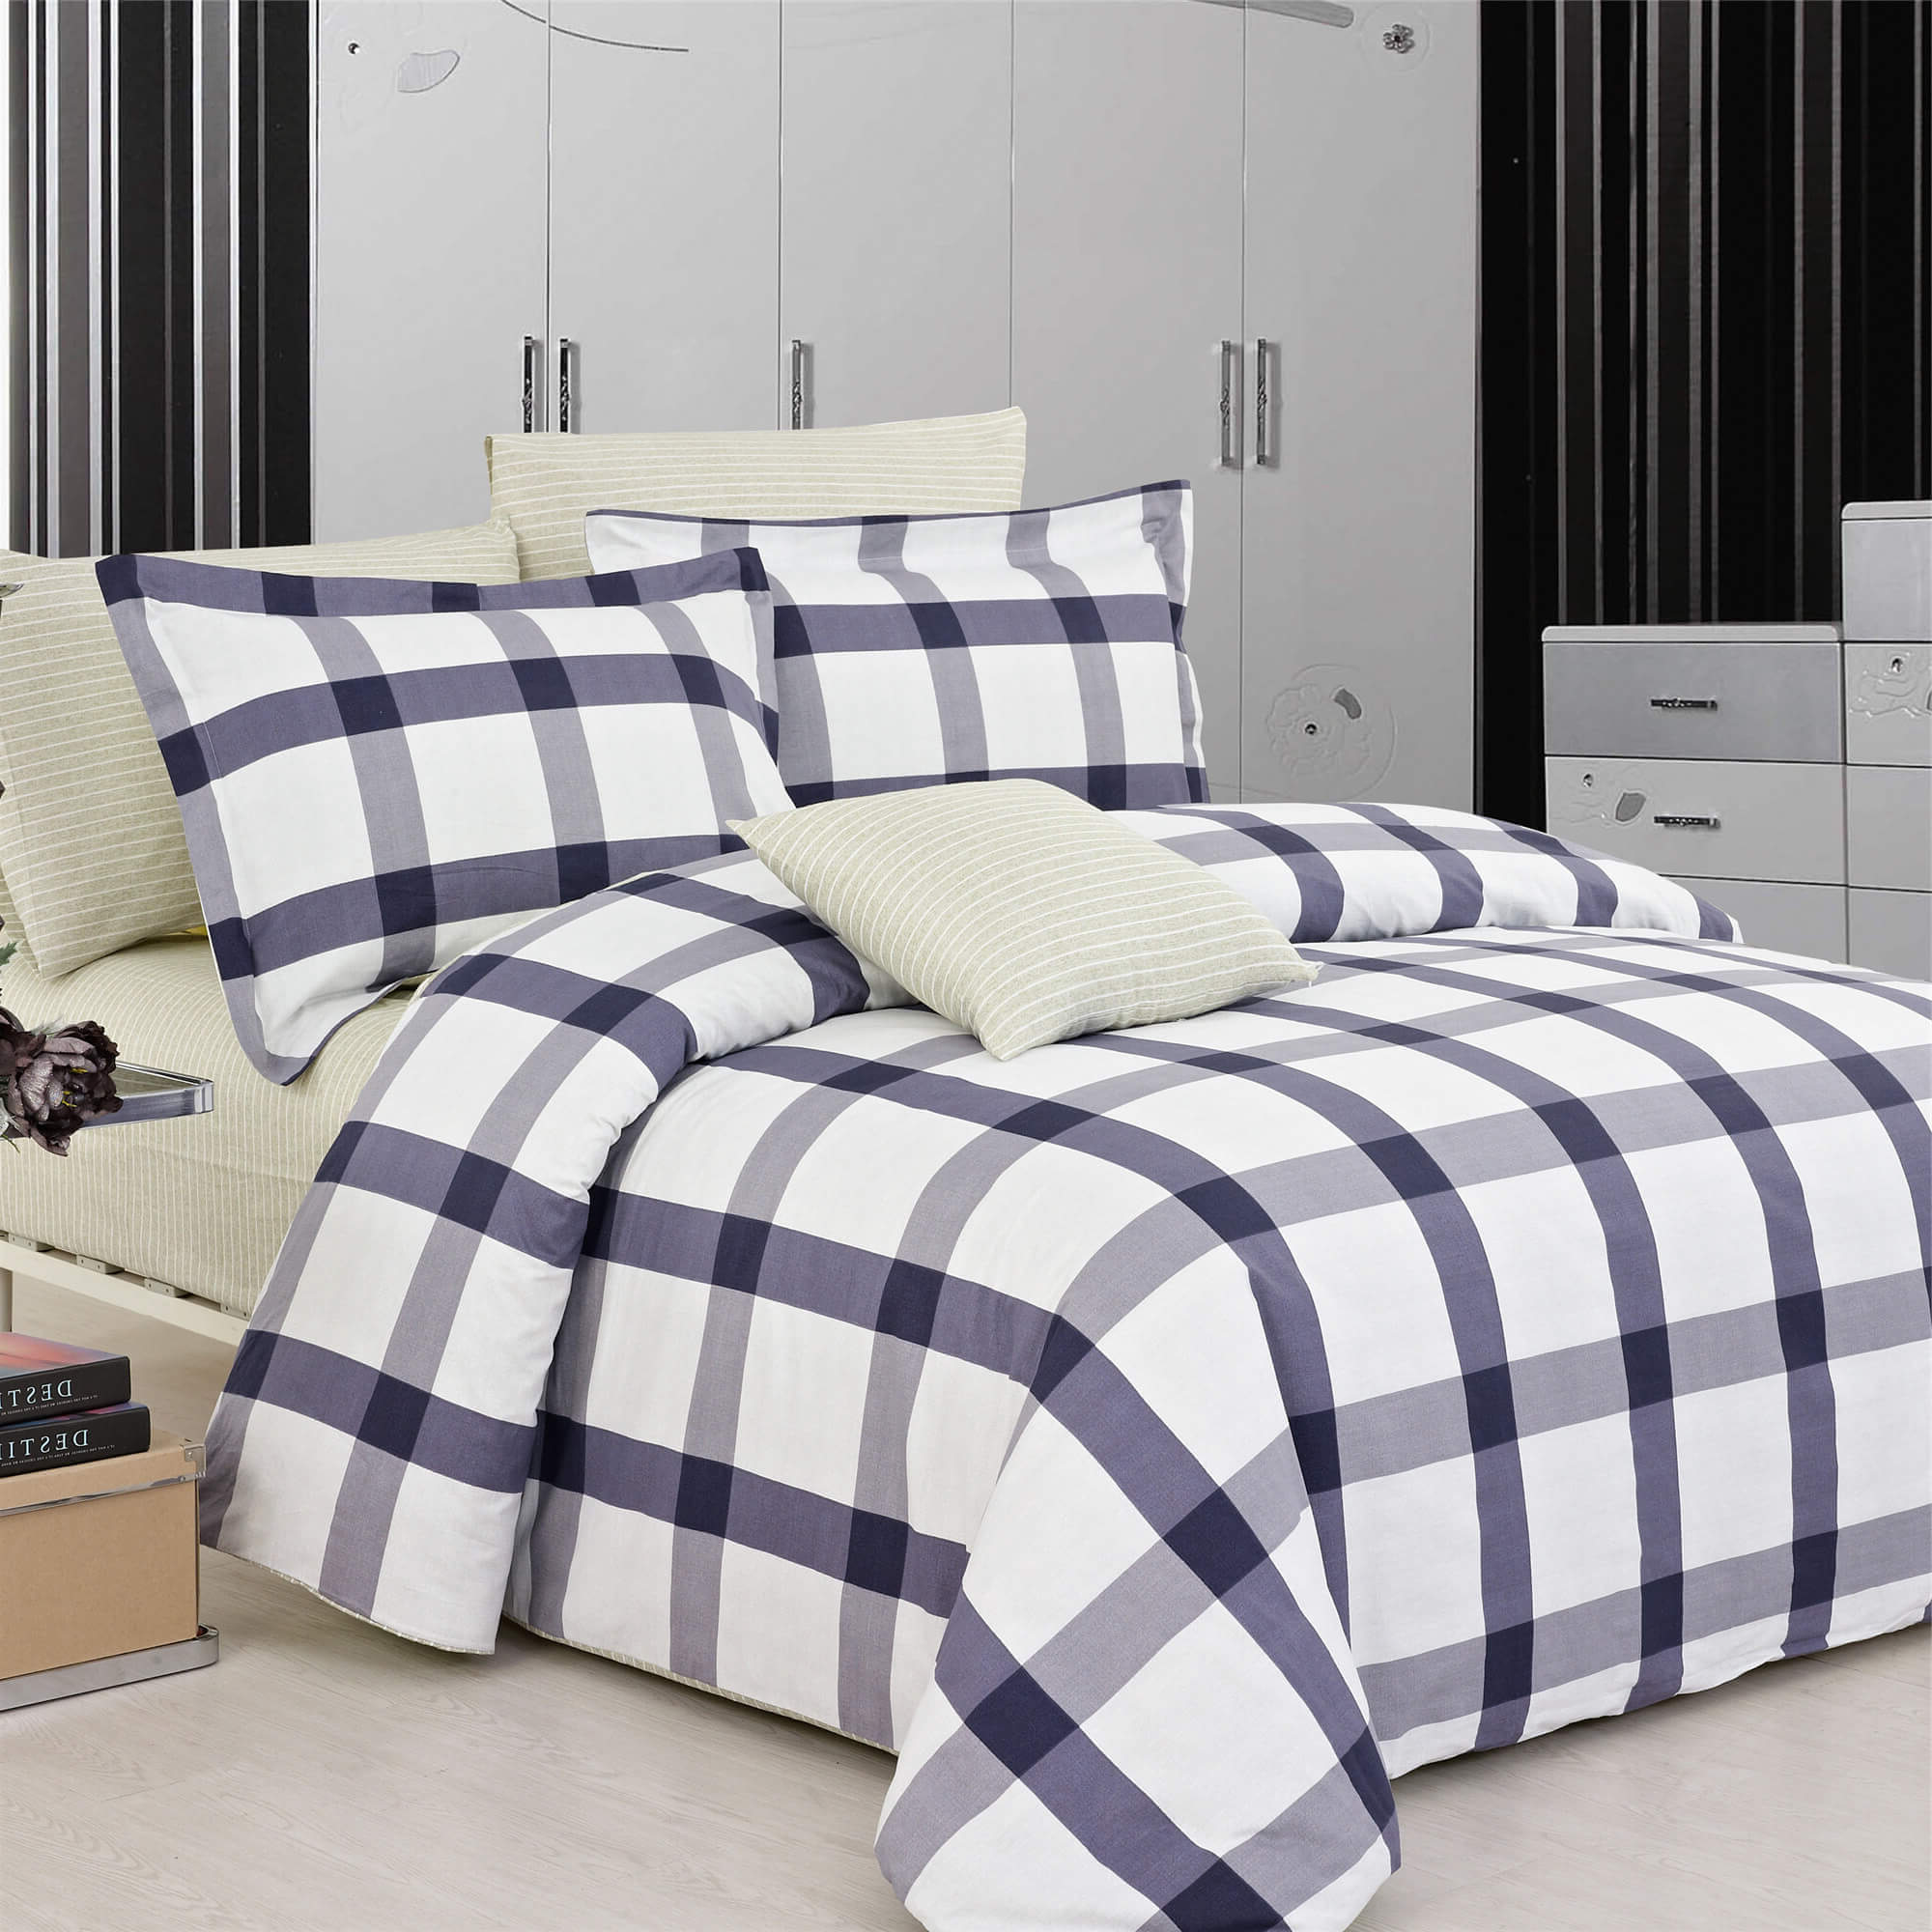 Manchester Duvet Cover Set